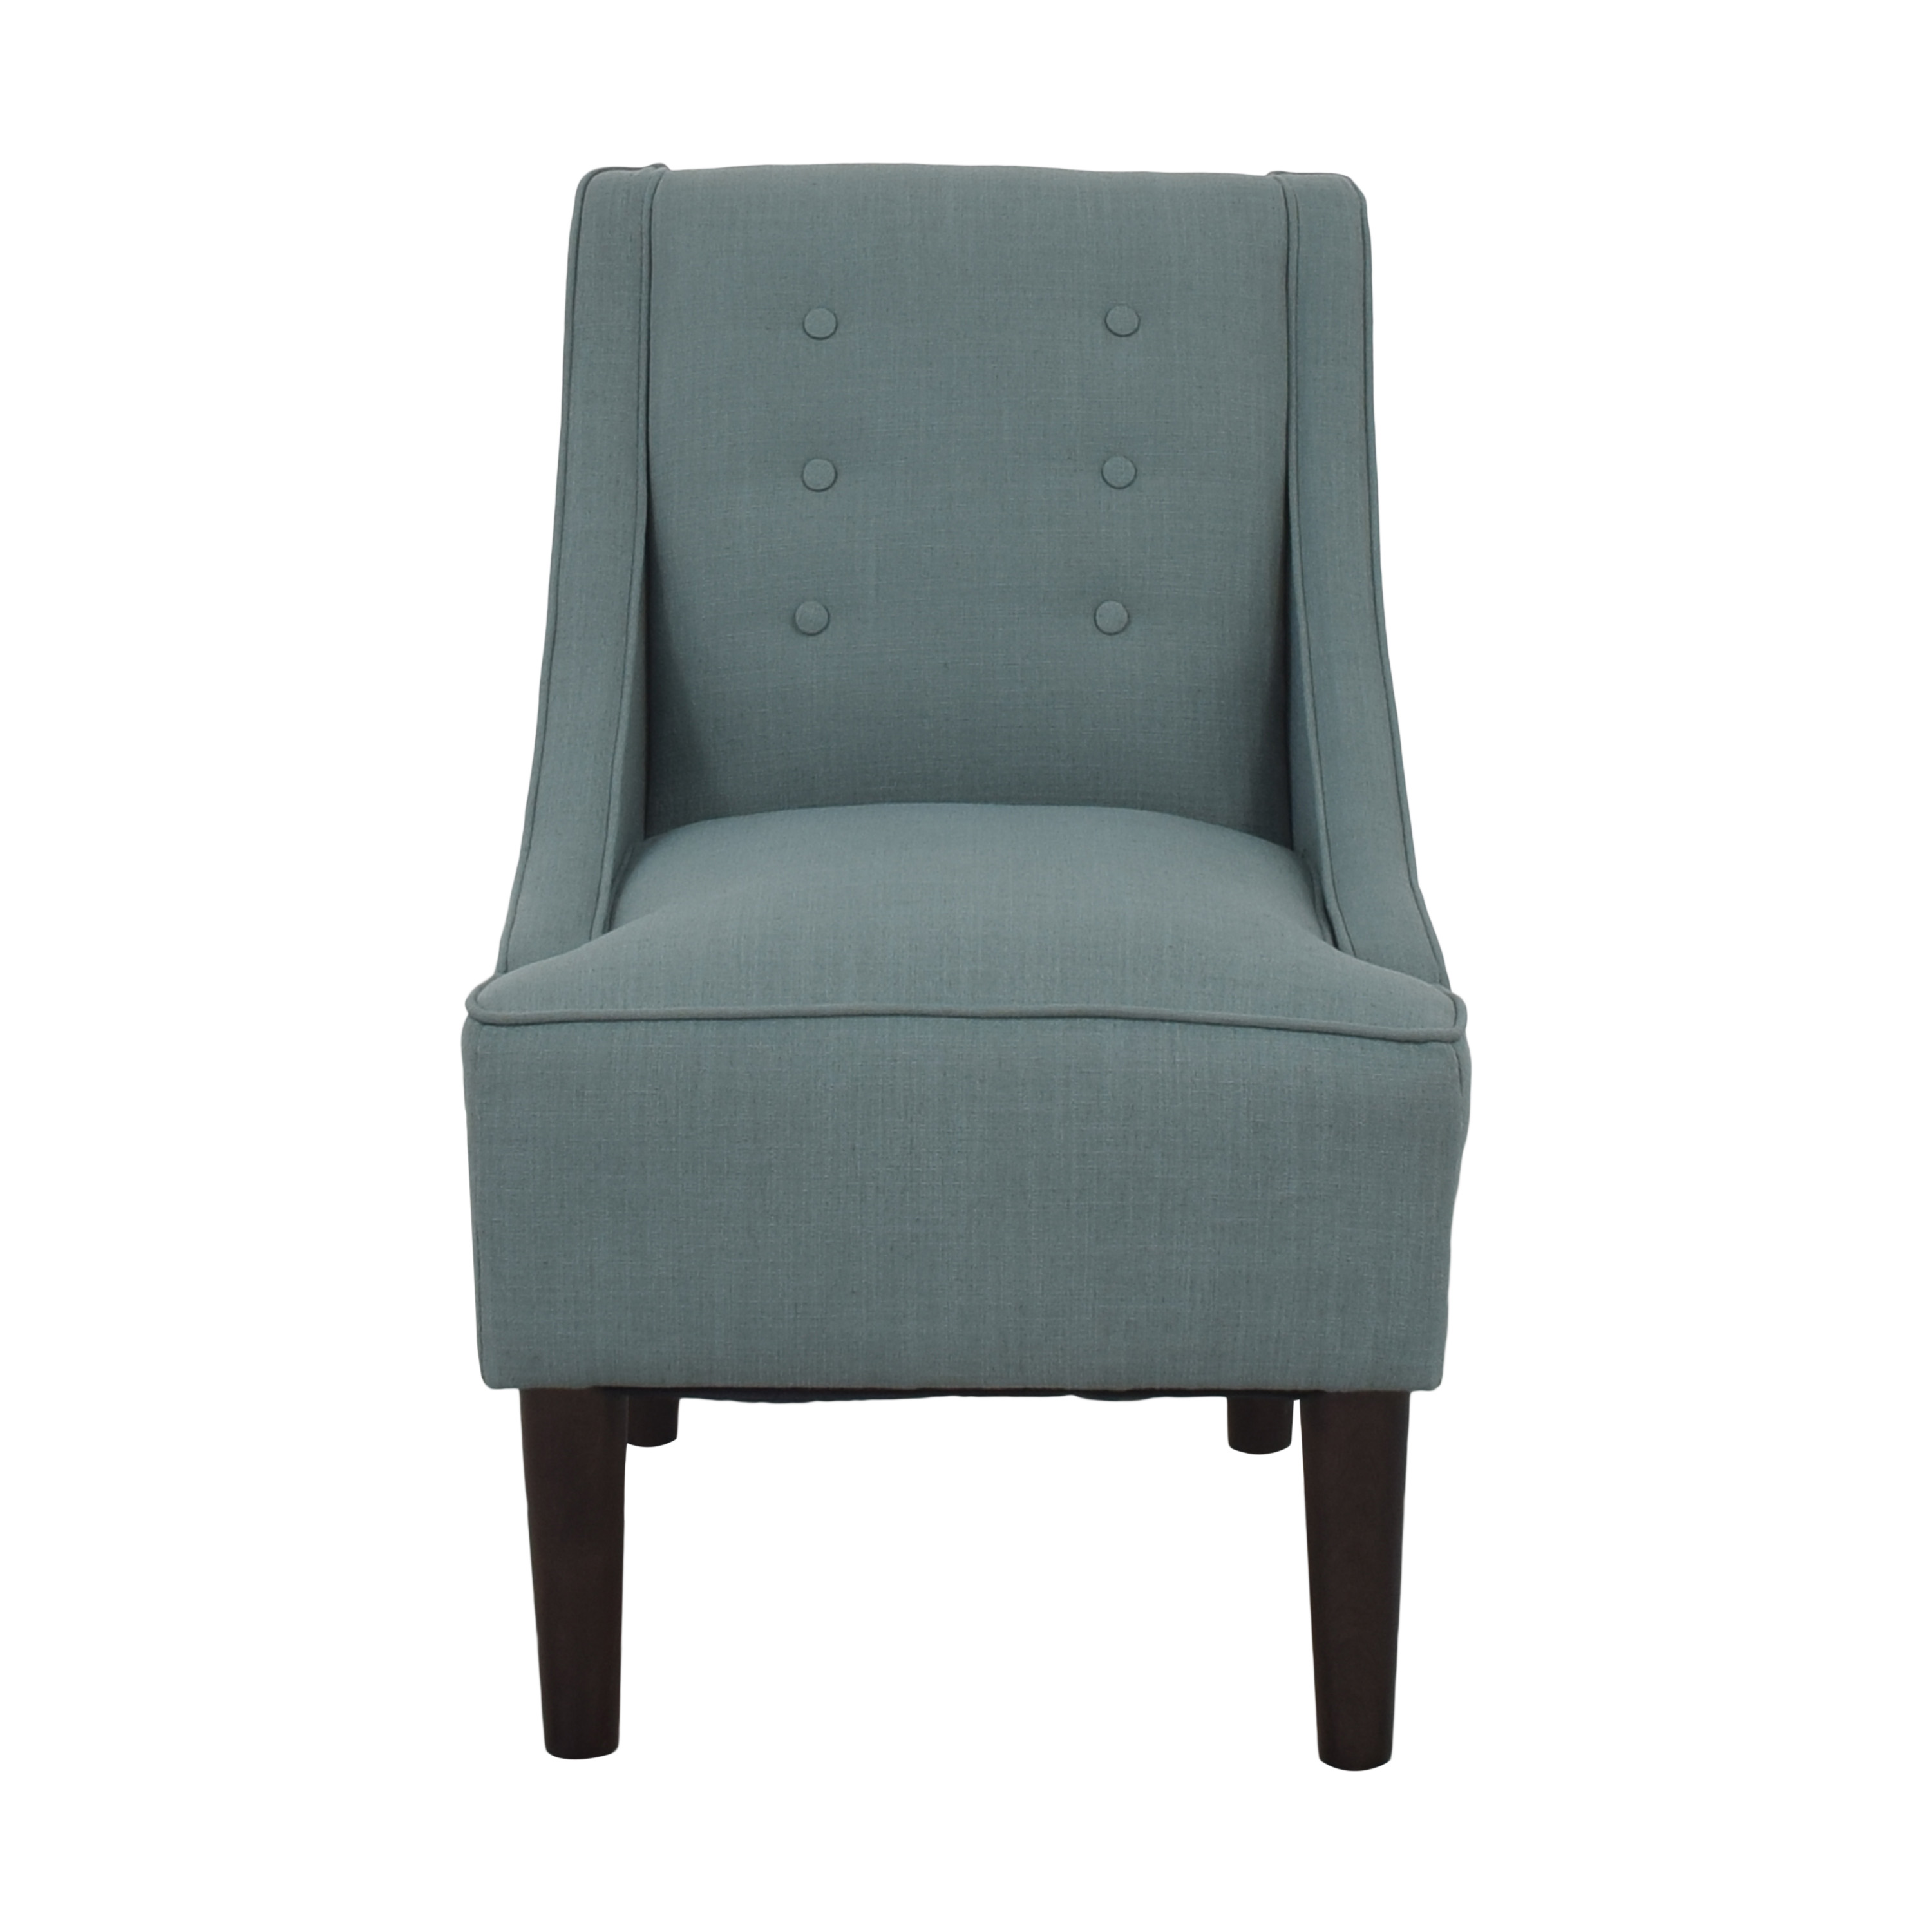 Threshold Swoop Arm Chair / Accent Chairs